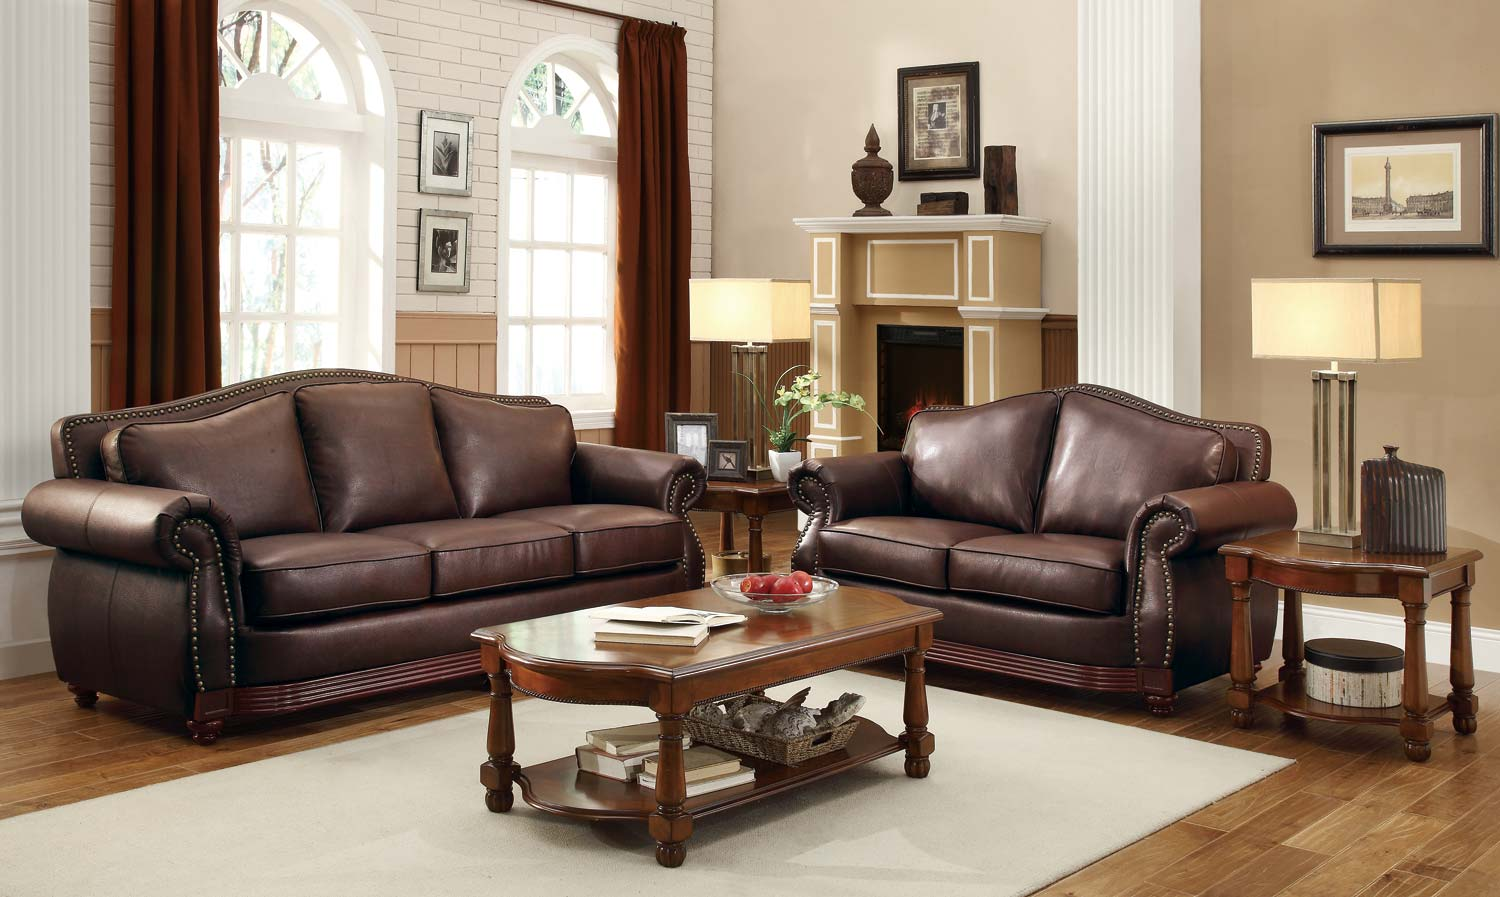 leather sofa set homelegance midwood bonded leather sofa collection - dark brown EKAJNEZ